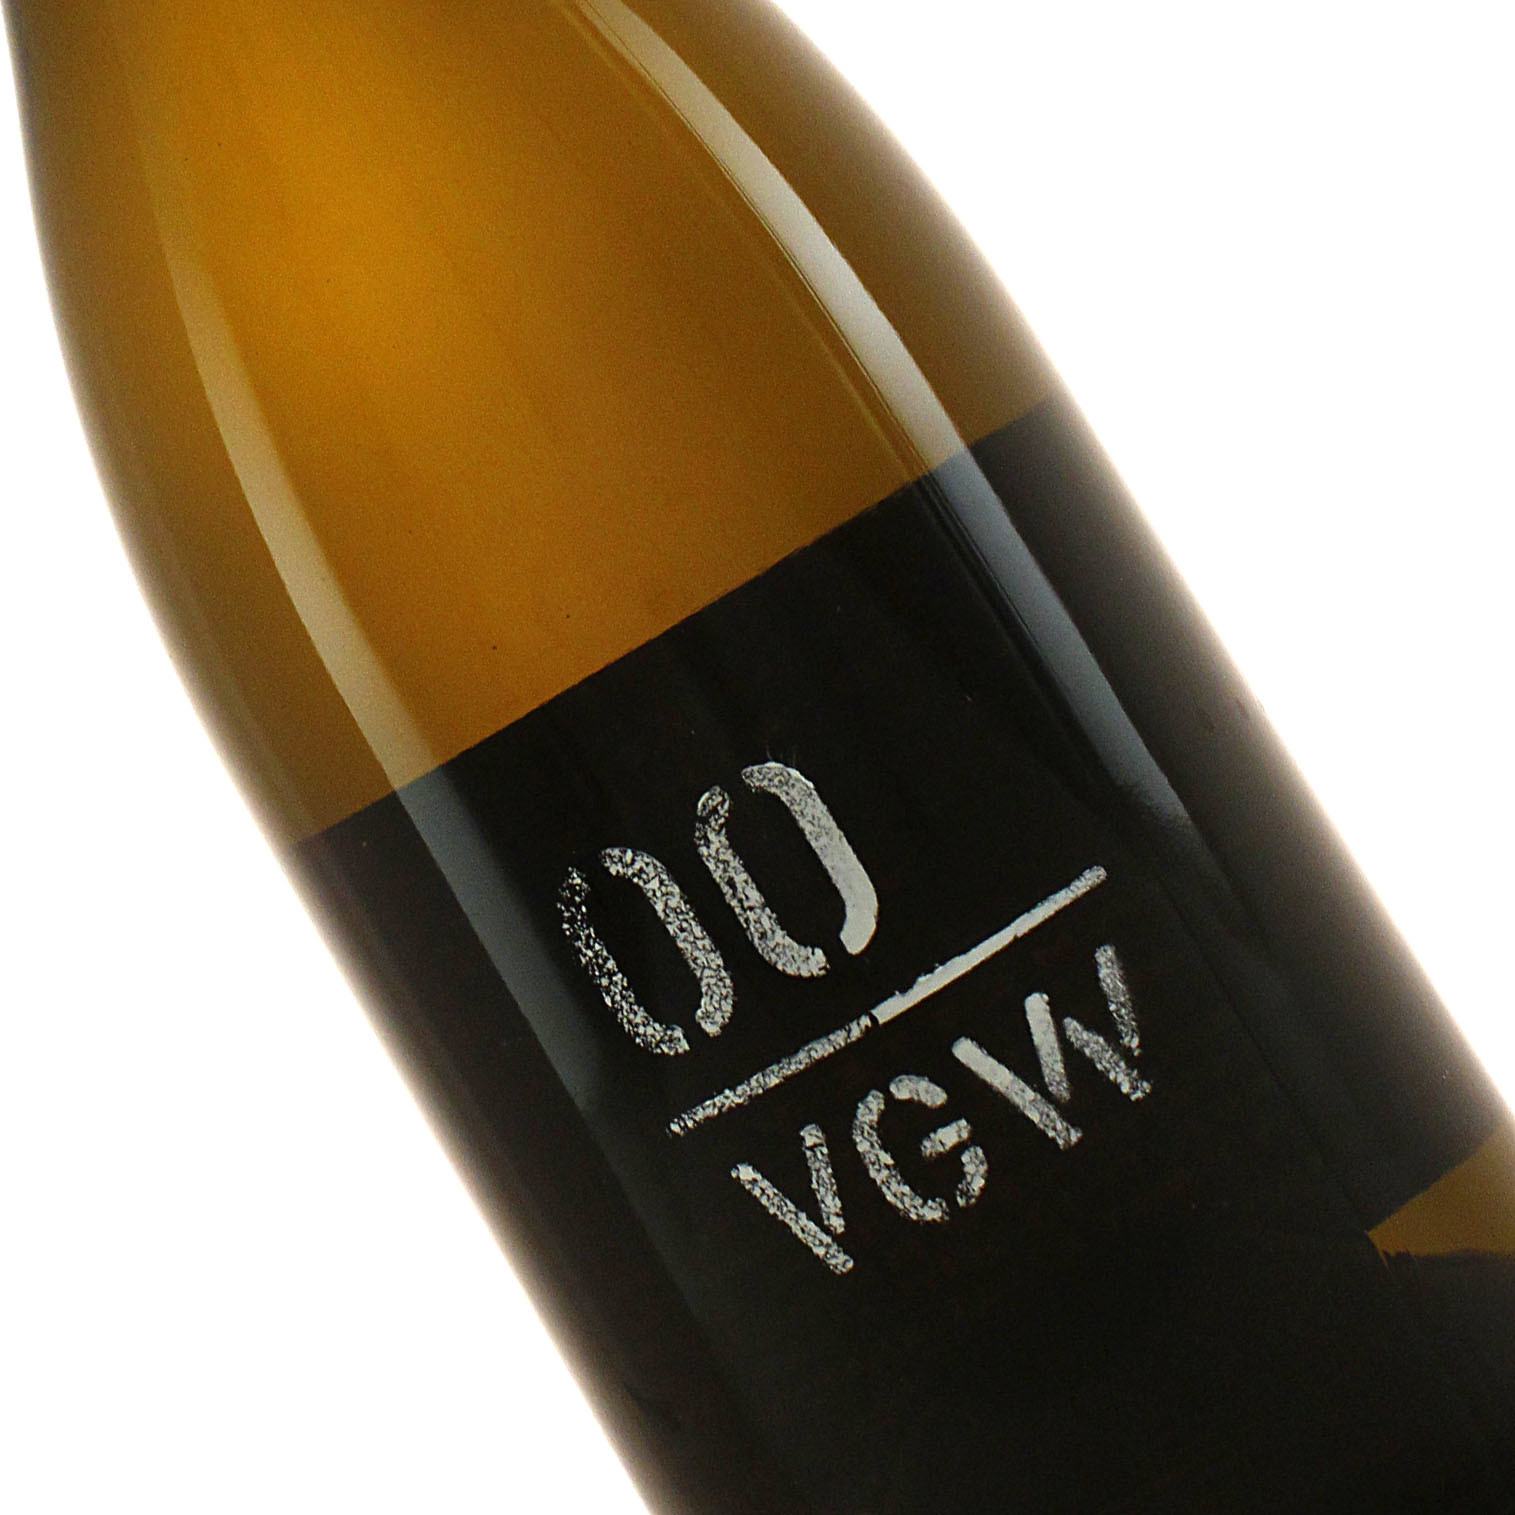 "00 2017 Chardonnay ""VGW"" Willamette Valley, Oregon"